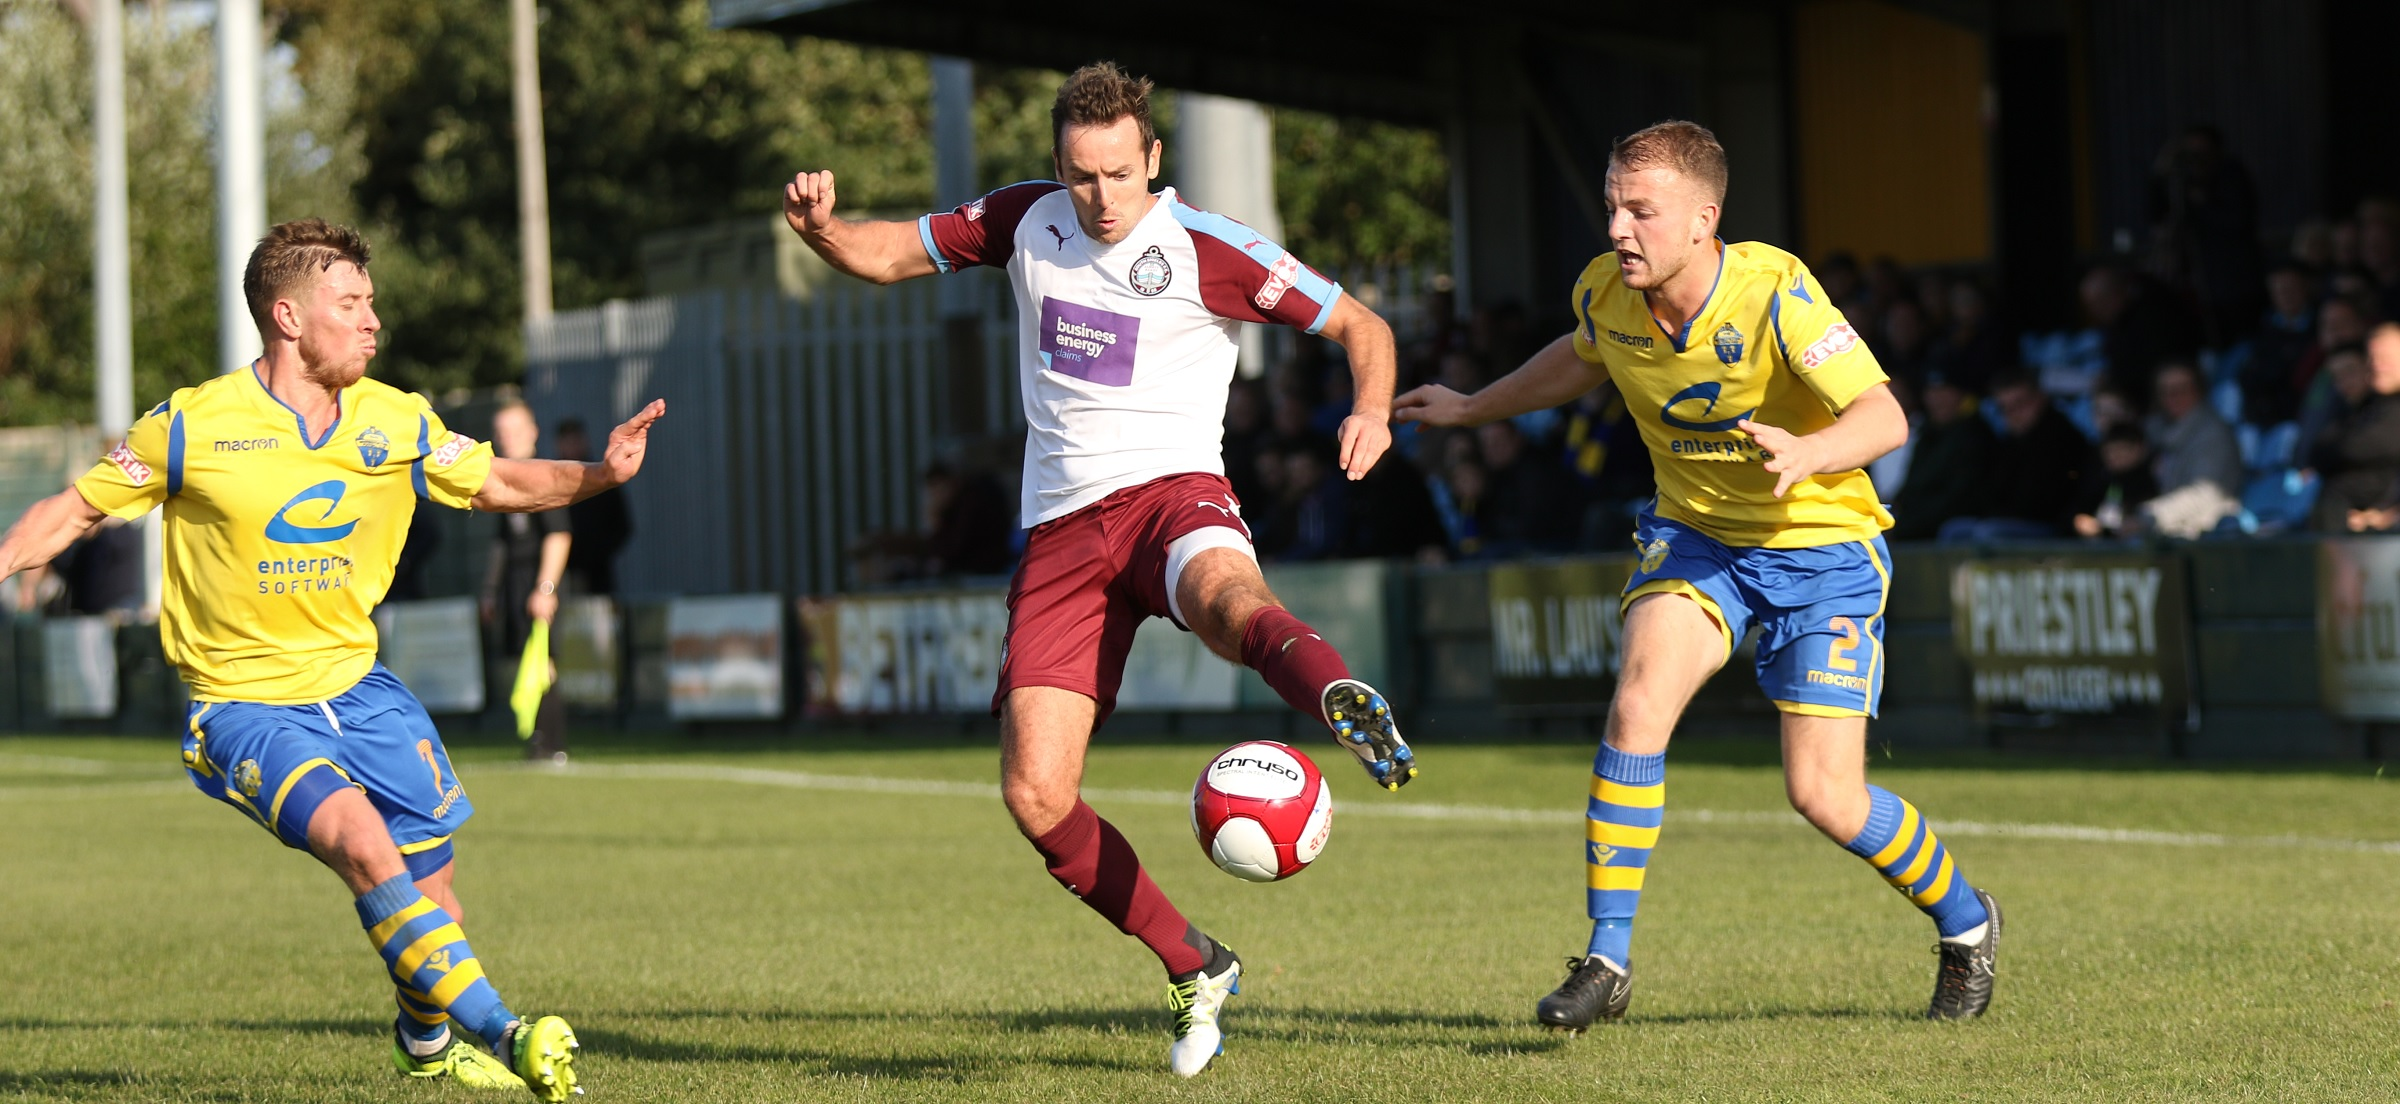 Warrington Town vs South Shields